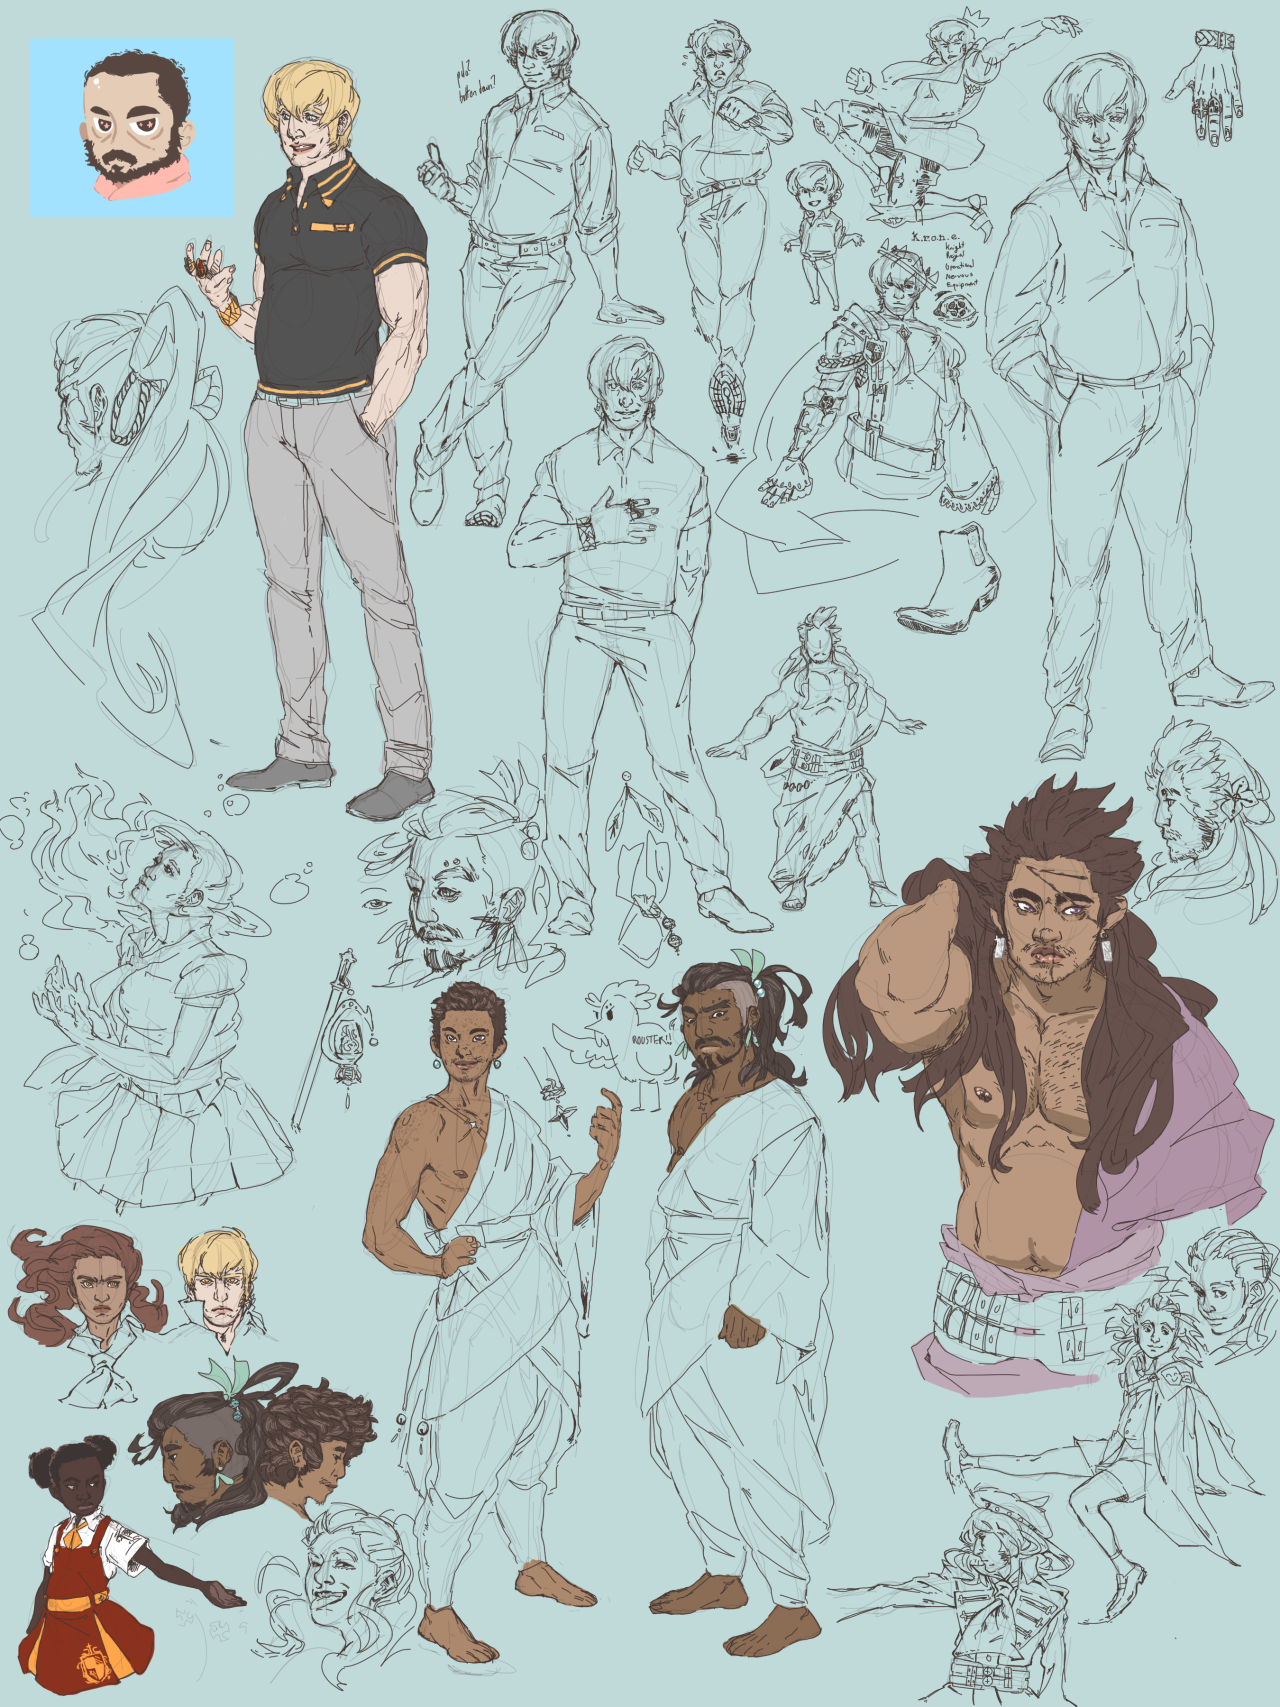 another sketch page and some detail shots